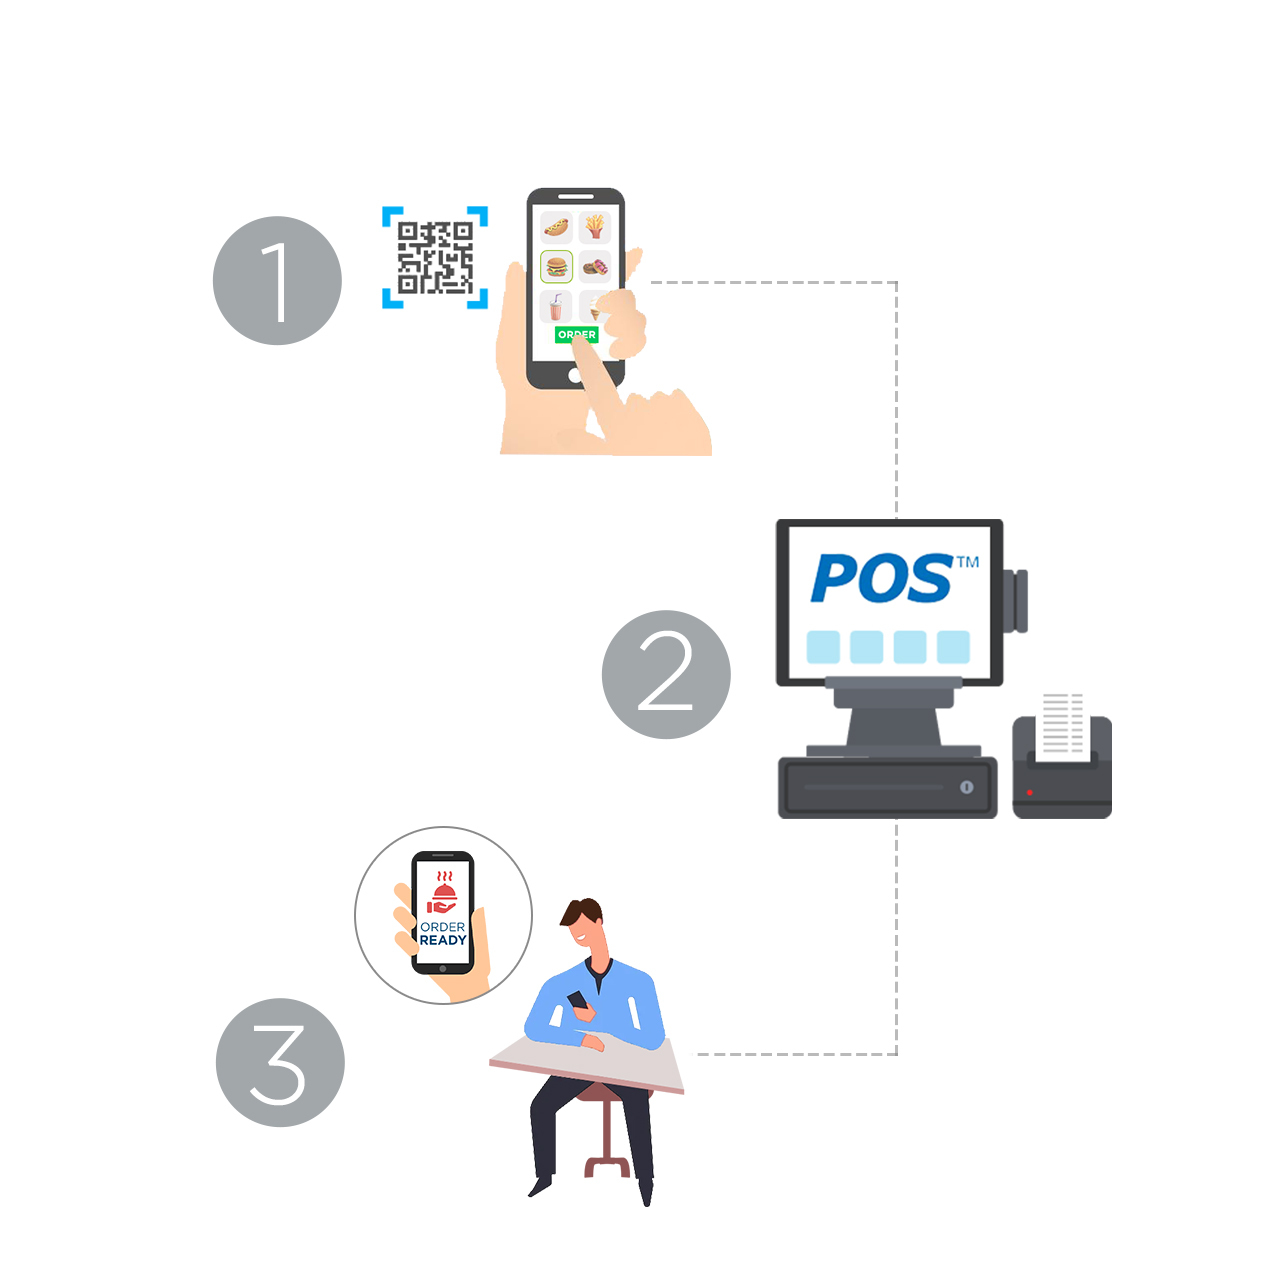 How XPR POS Integration Works